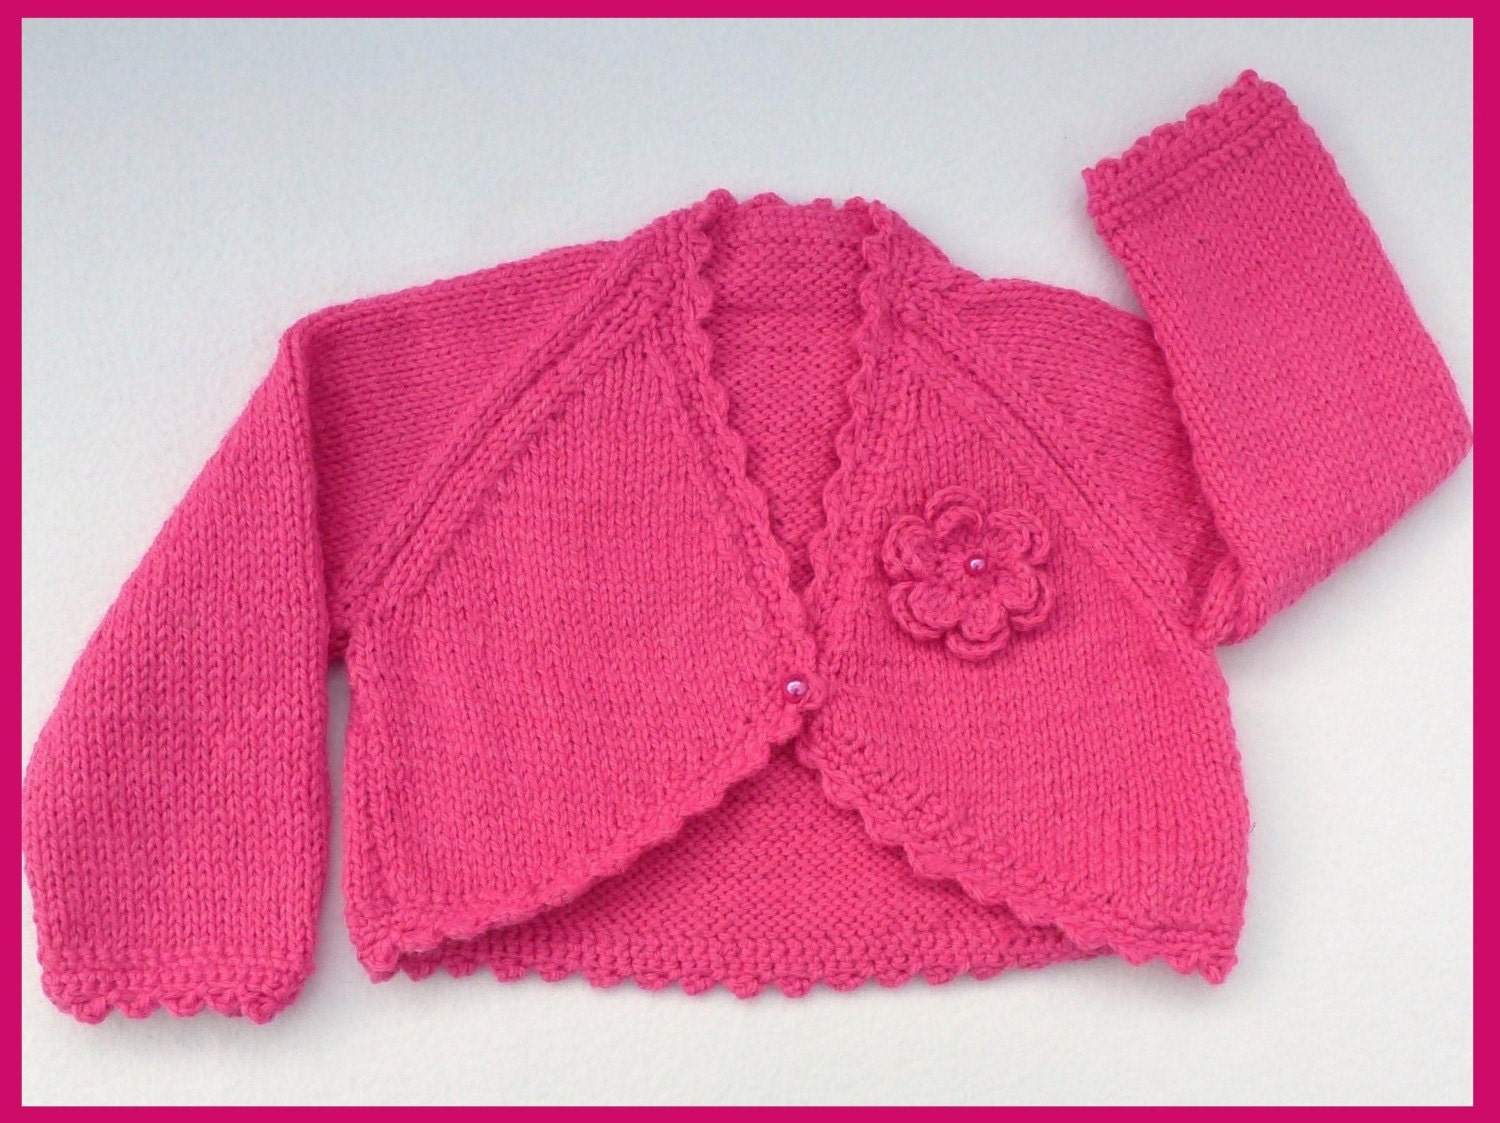 Baby sweater. Baby girl hand knitted raspberry pink bolero cardigan to fit 3 to 6 months